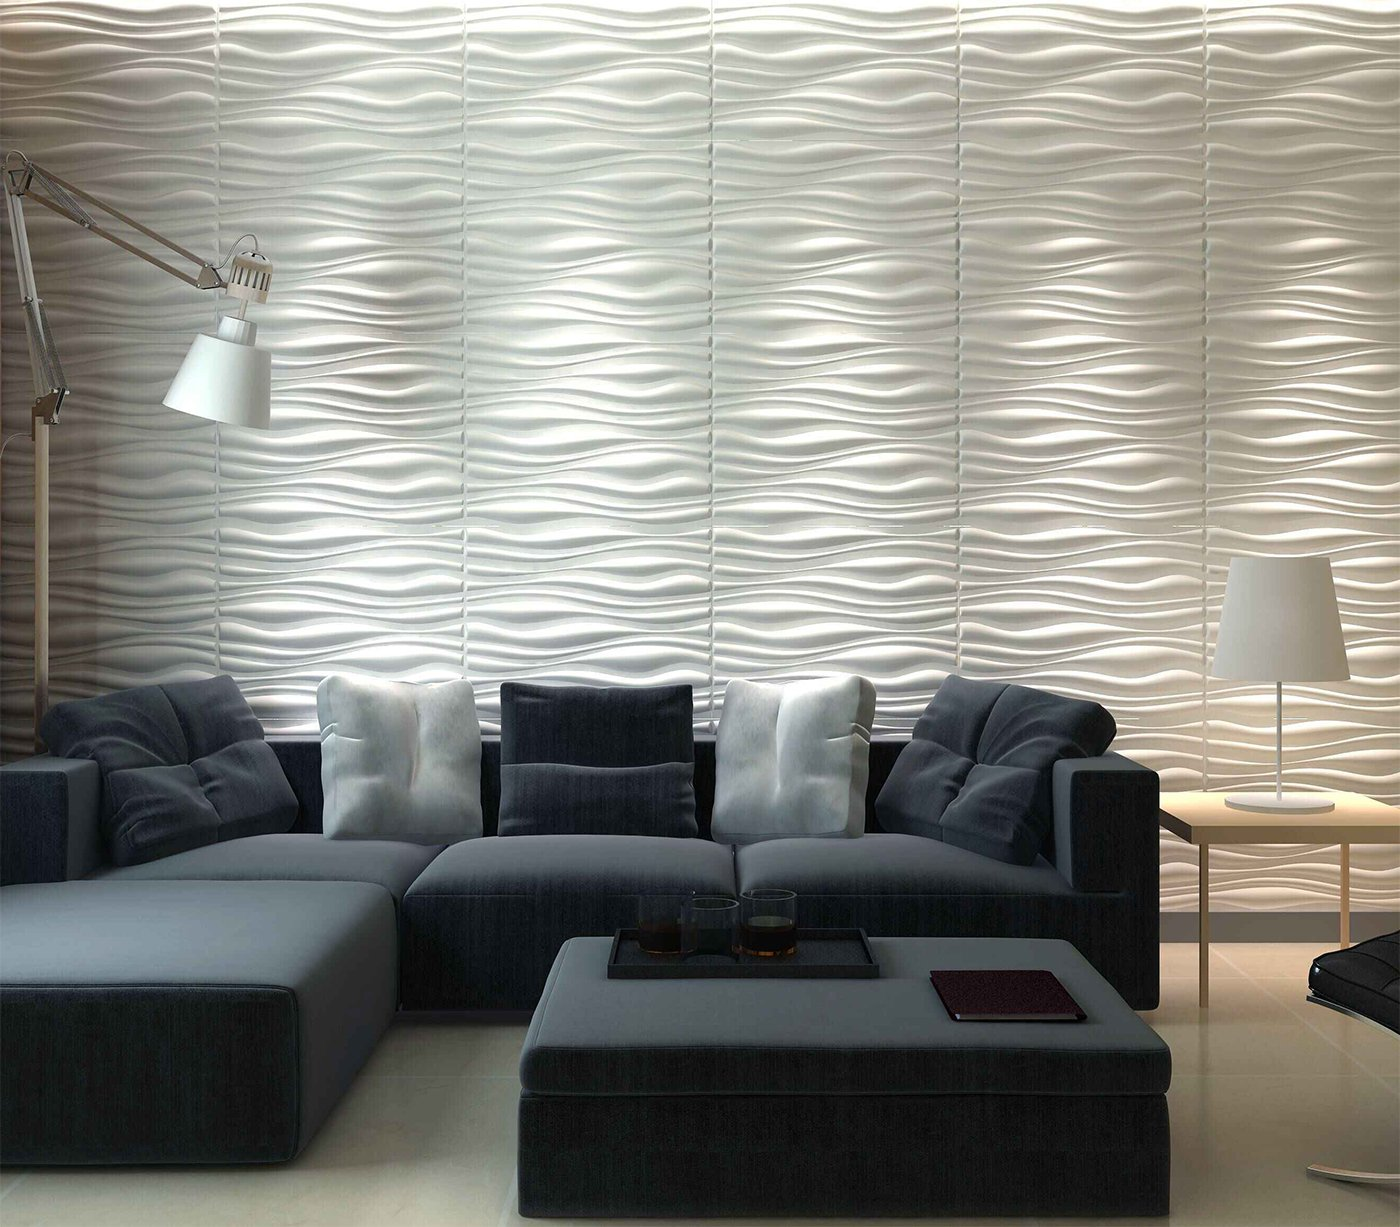 Amazon.com: Art3d Decorative 3D Wall Panels Wave Board Design for TV ...